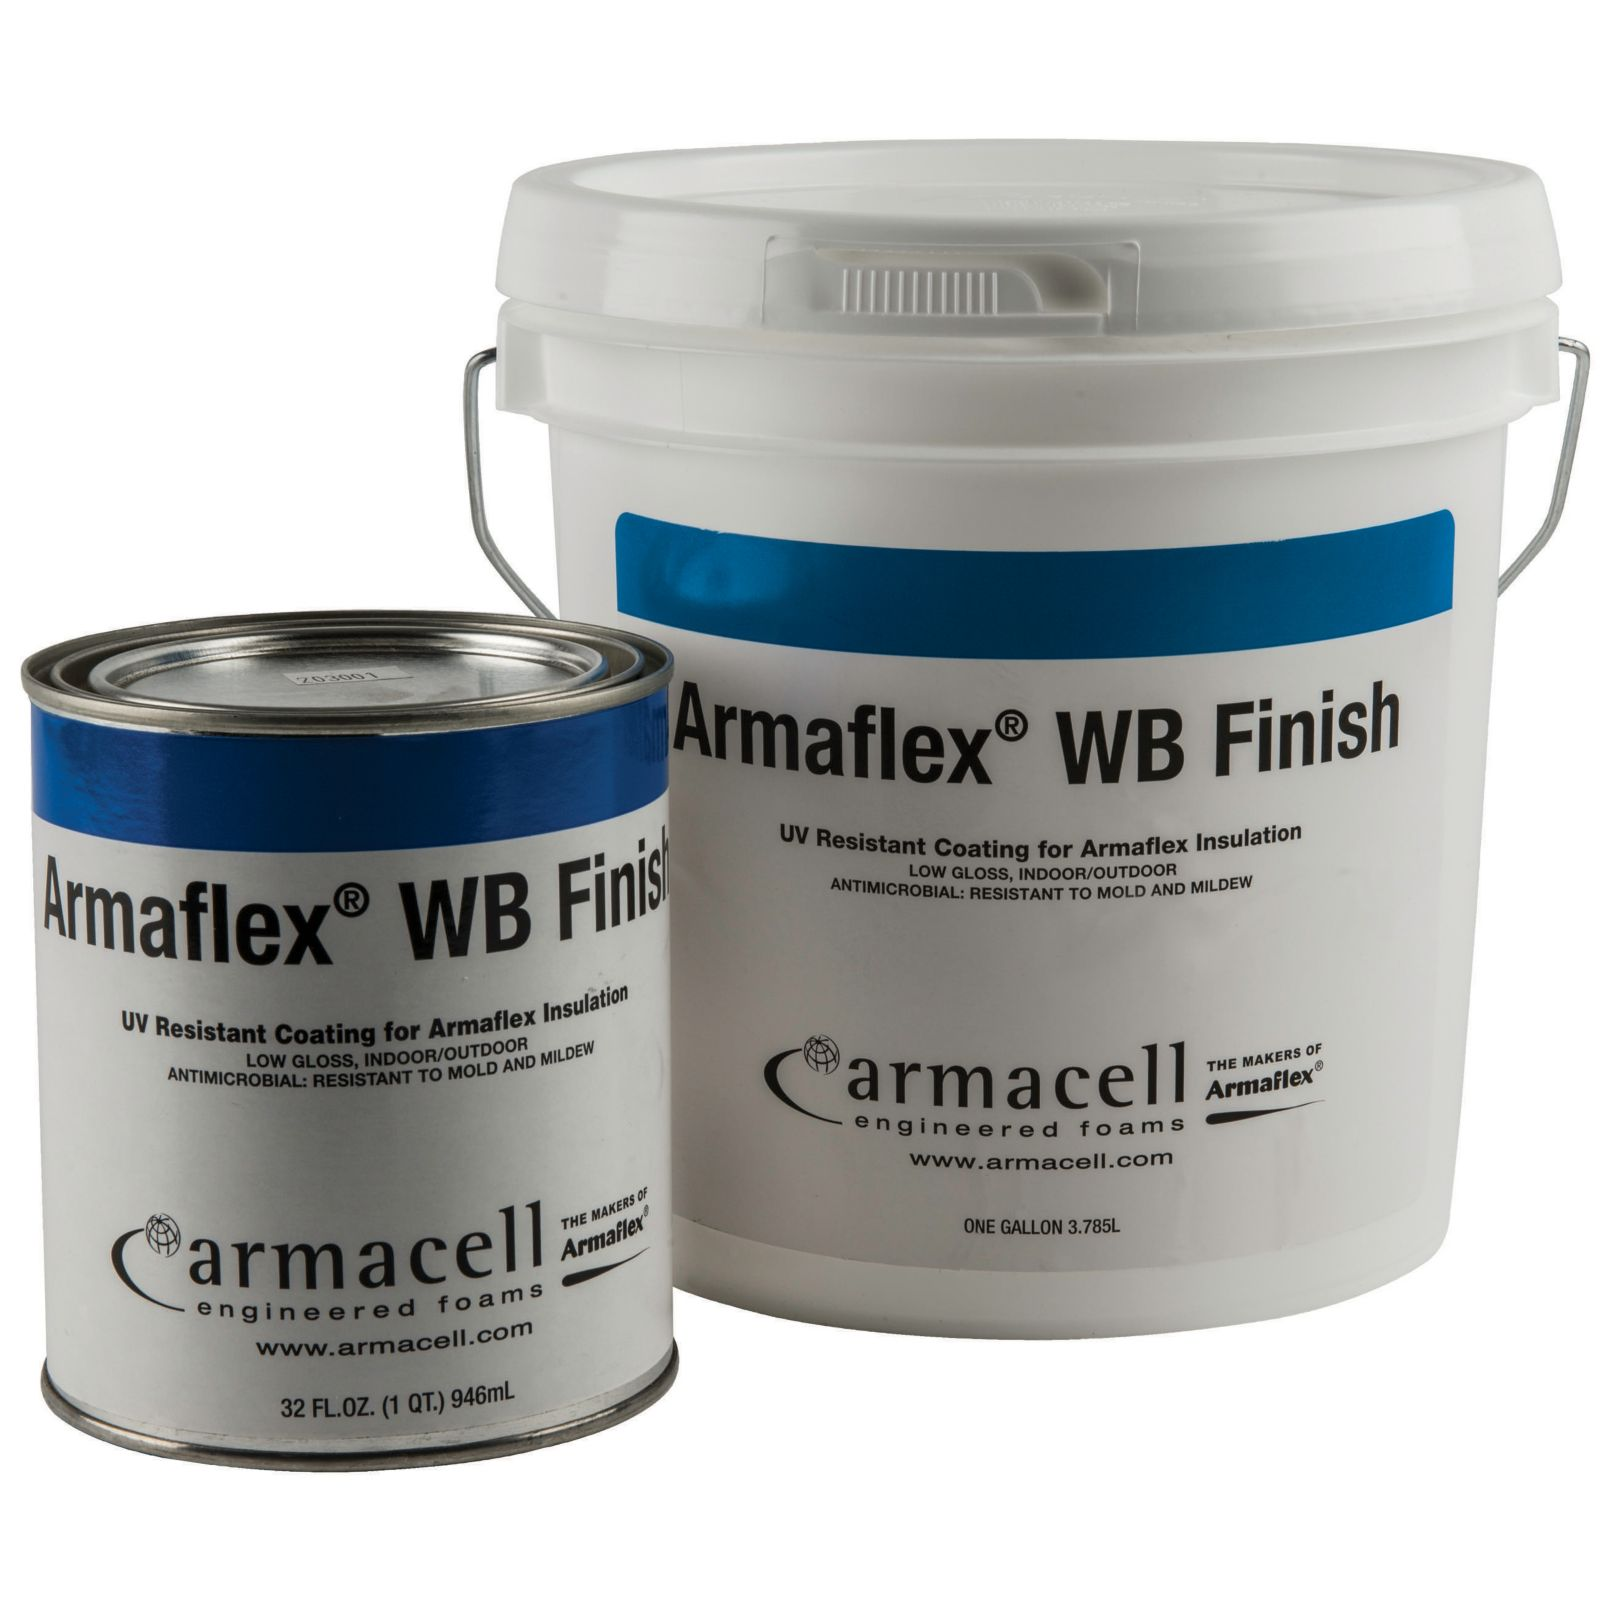 Armacell WBF8530006 - Armaflexa® Water Base Finish, UV Paint, Gallon Container